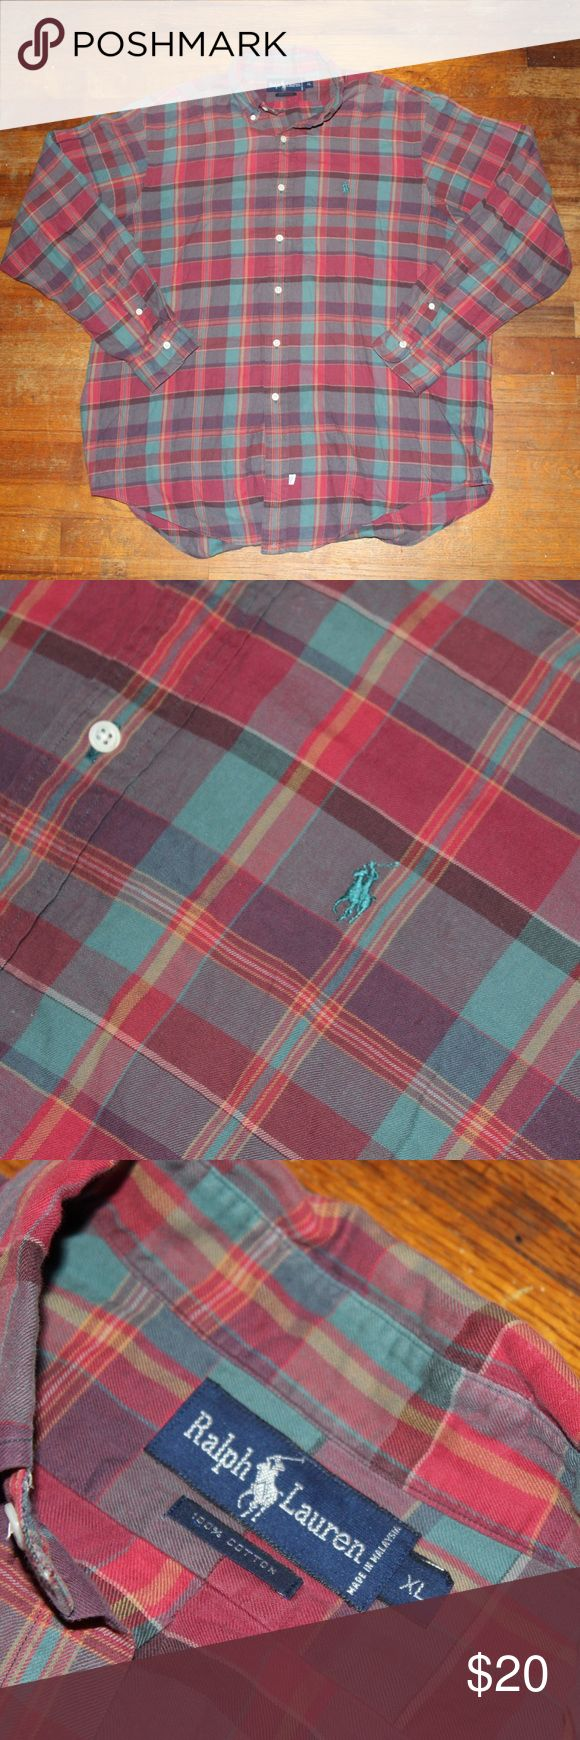 Polo Ralph Lauren Plaid Button-up Shirt Great condition 9/10   100% cotton, super soft. Size XL  All sales final. Please contact with any questions or offers! Polo by Ralph Lauren Shirts Casual Button Down Shirts